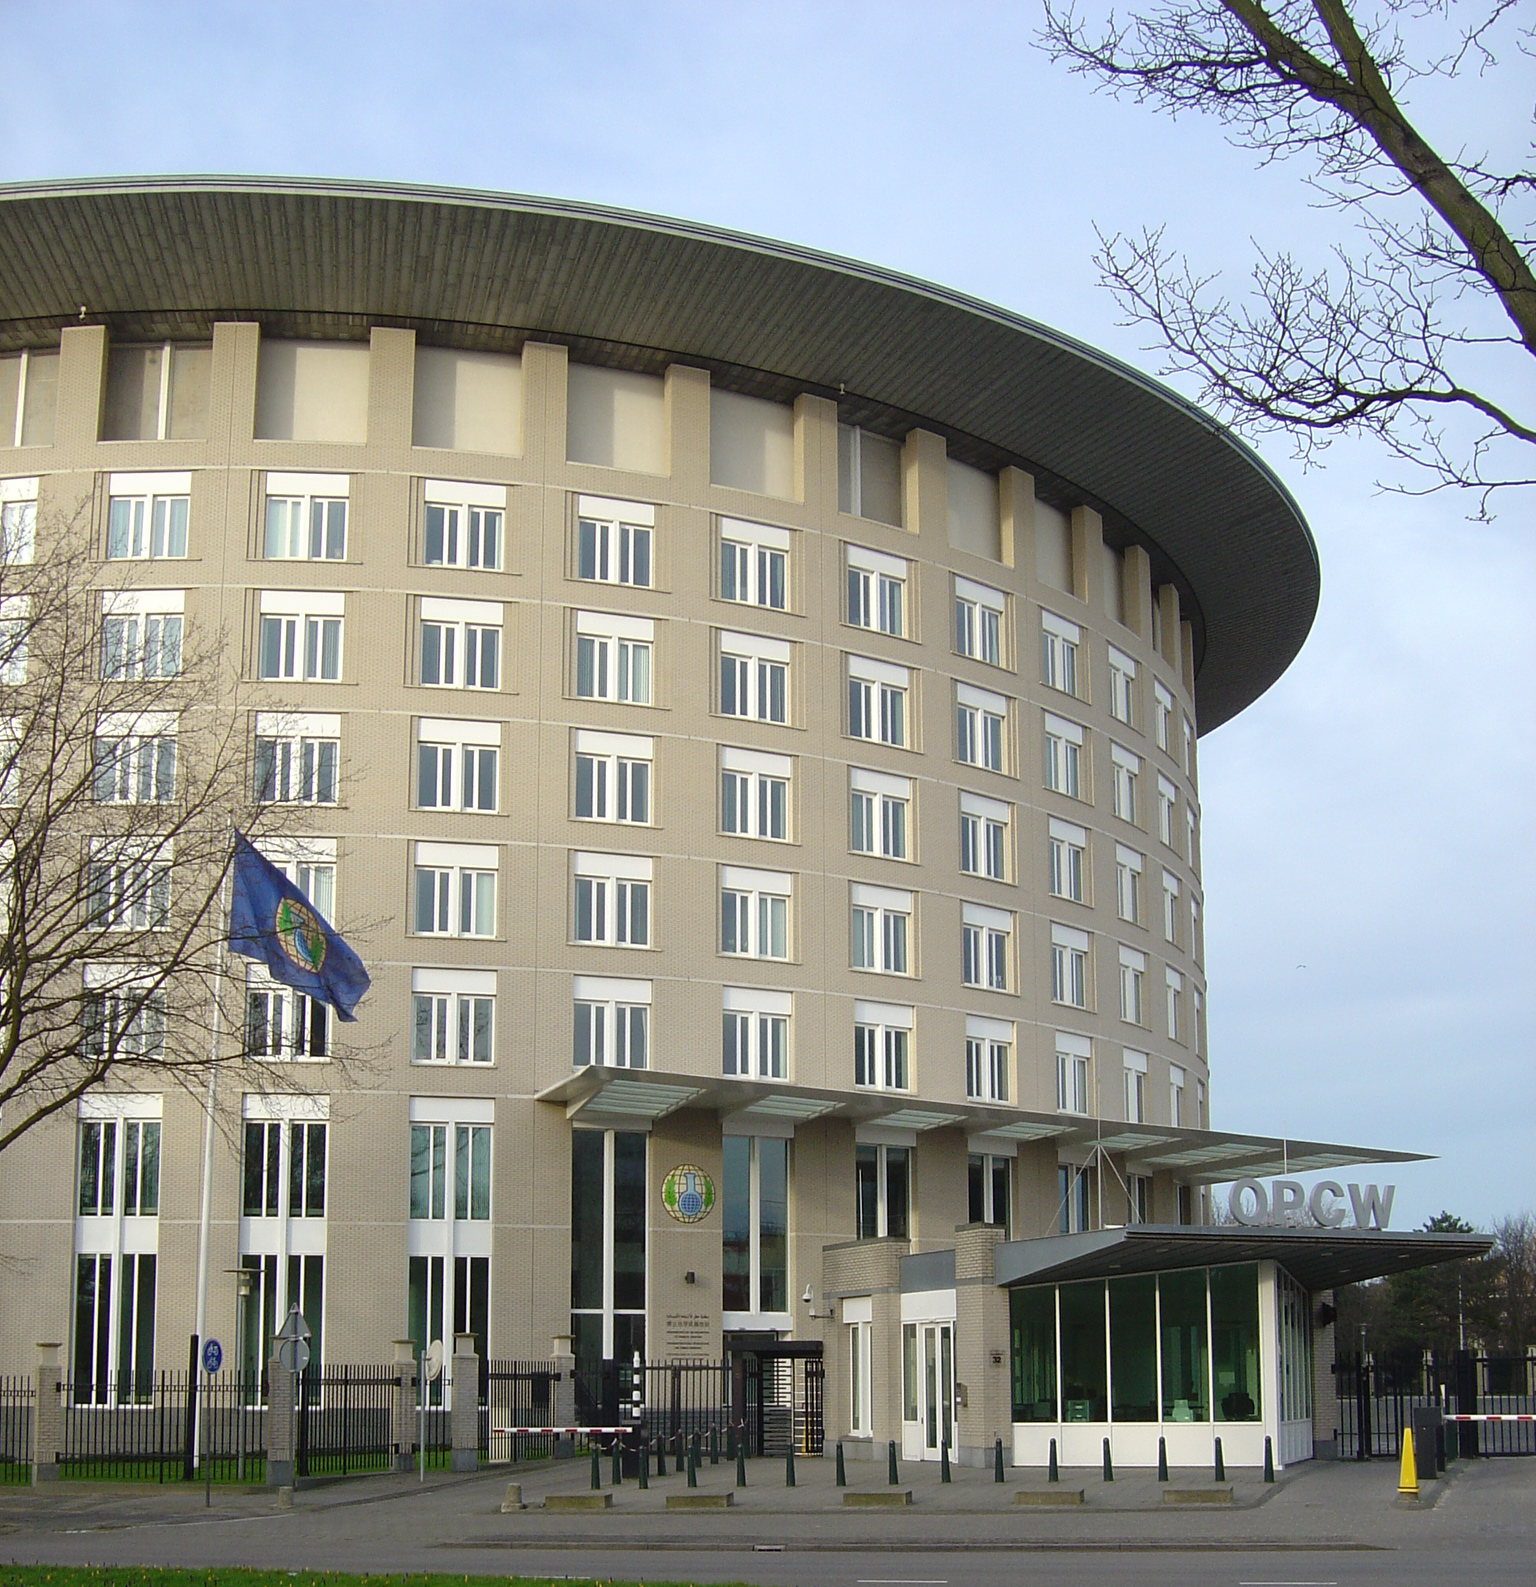 OPCW Headquarters in the Hague, Netherlands